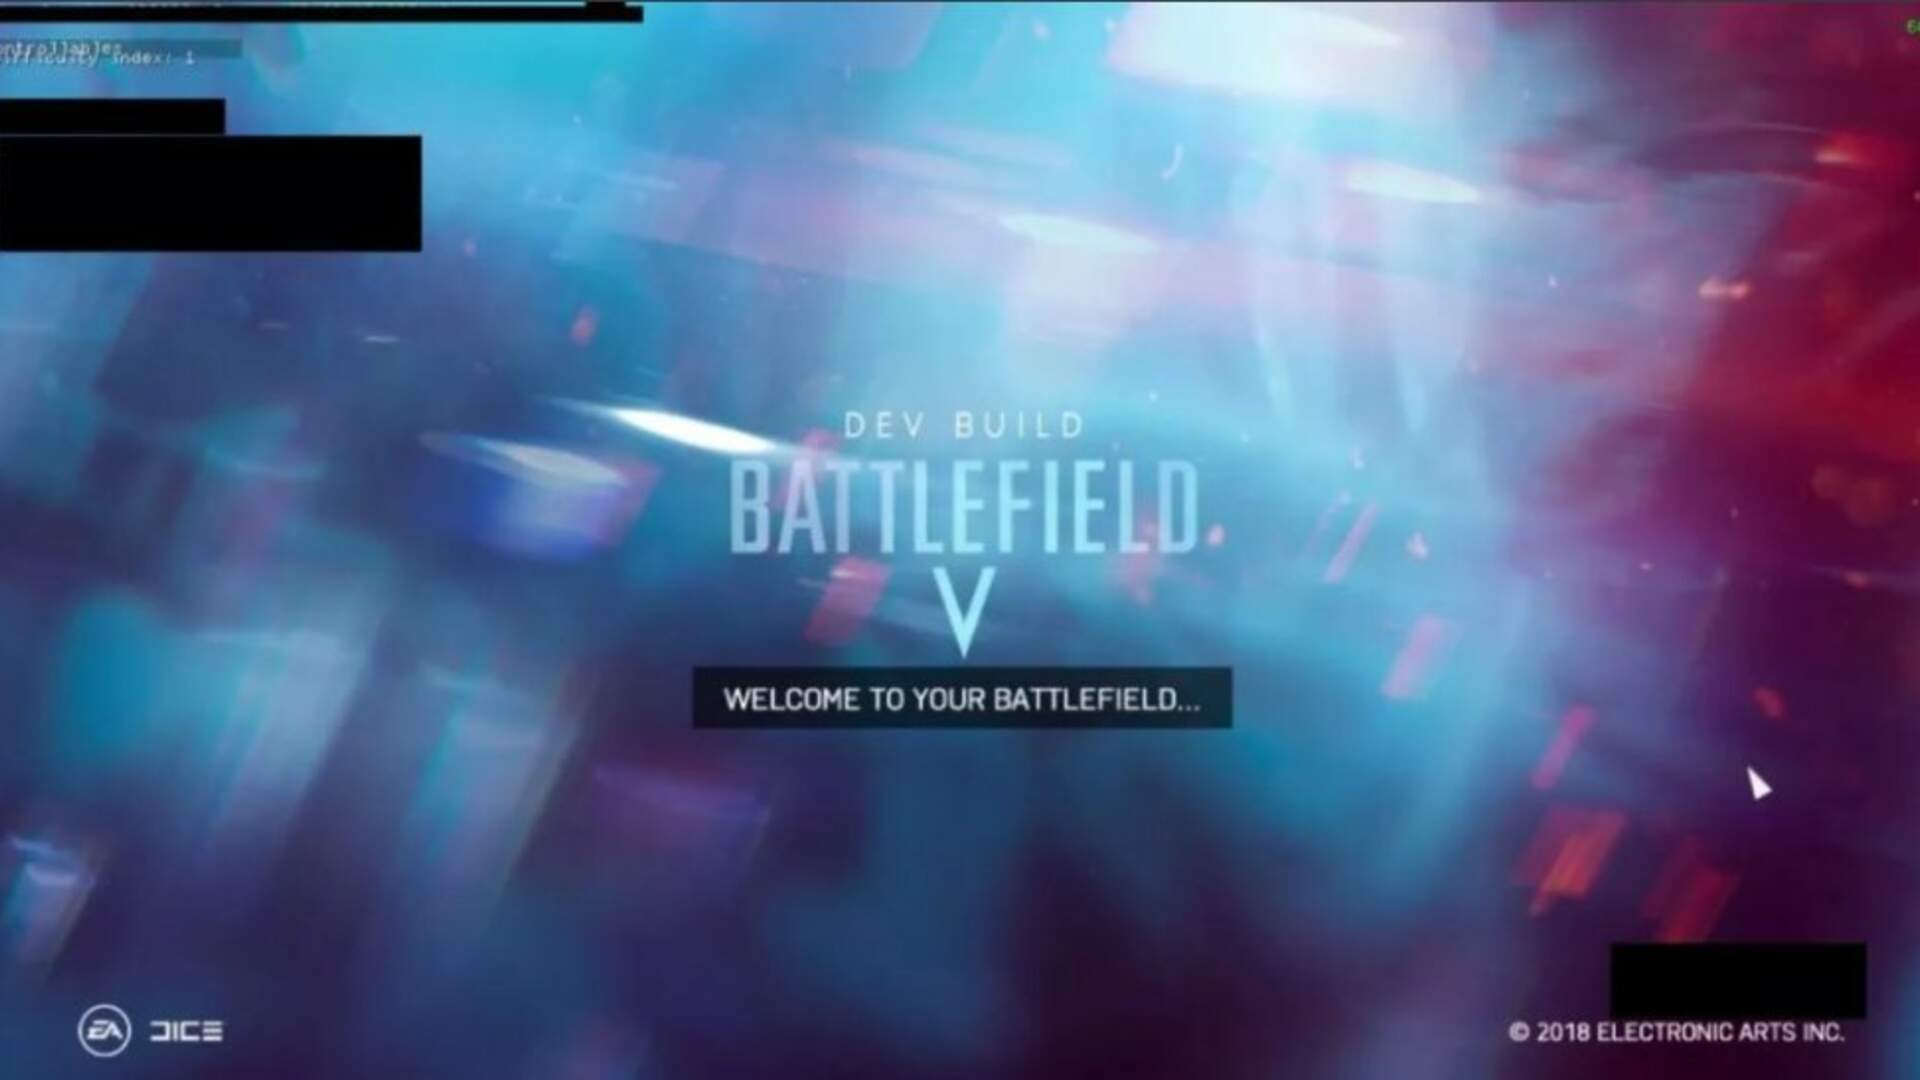 The Daily Show's Trevor Noah Will Be Hosting EA's Big Battlefield 5 Reveal Event Next Week